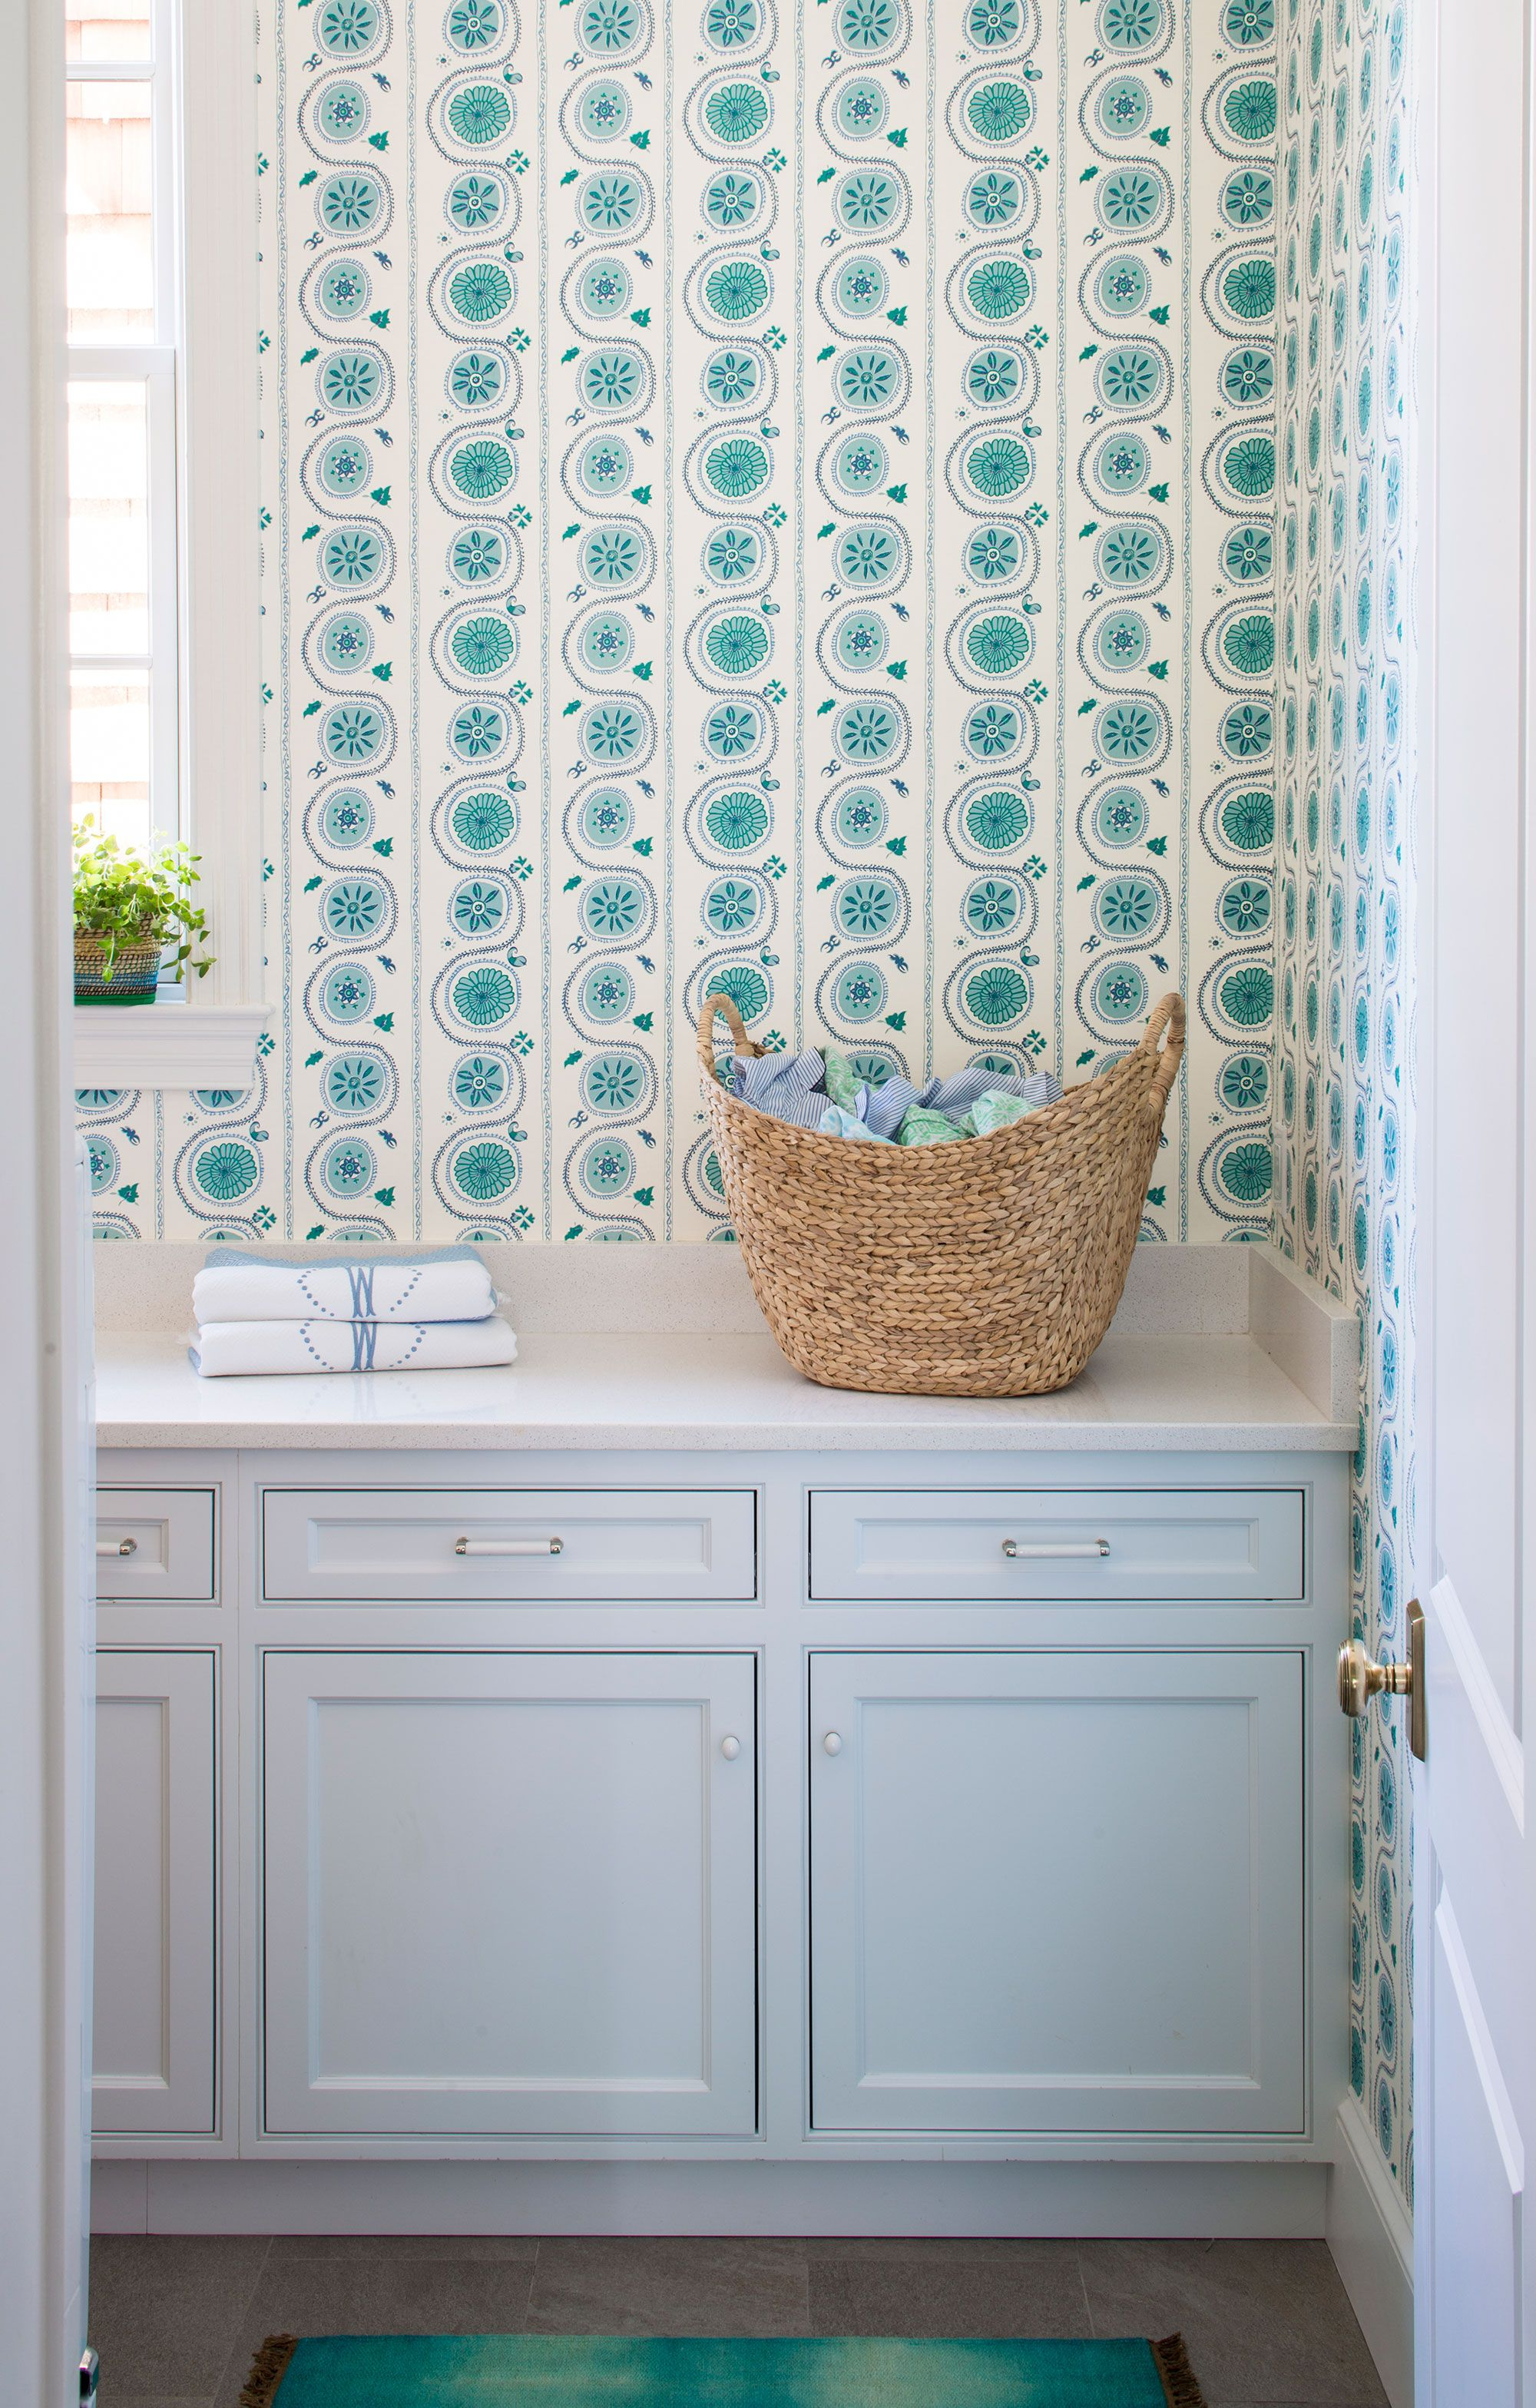 Laundry Room With Turquoise Mally Skok Wallpaper